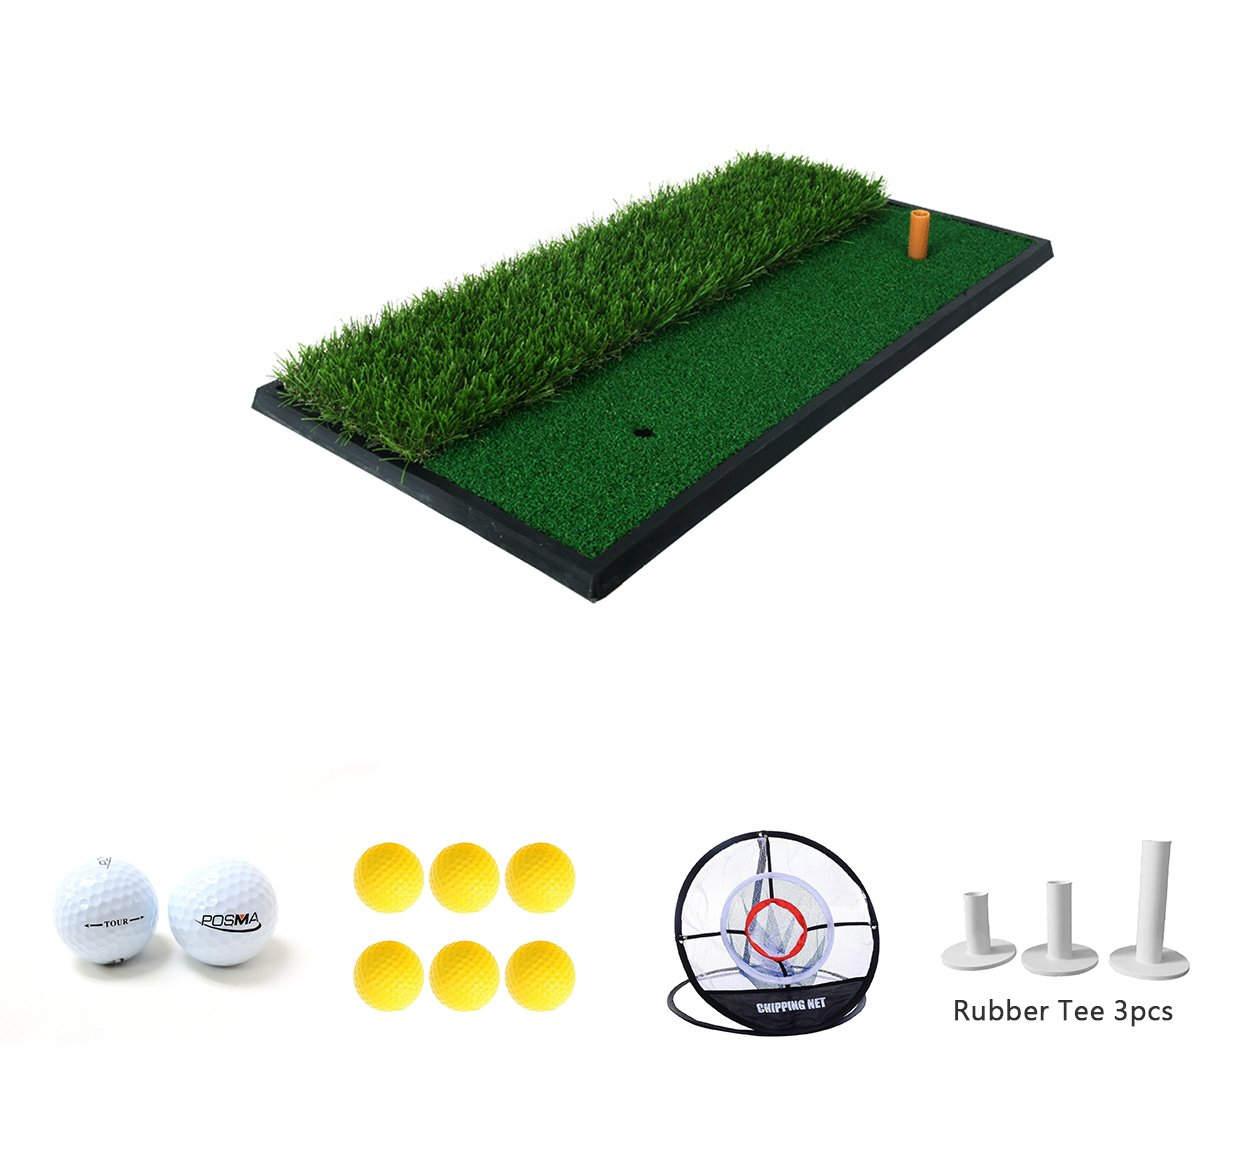 POSMA HM020A 30x60cm Golf Practice Double Side Hit Mat bundle Gift set with 3pcs Rubber Tee + 2pcs Tour Balls + 6pcs Golf Balls + 1pc Portable Golf Chipping Hitting Net for indoor